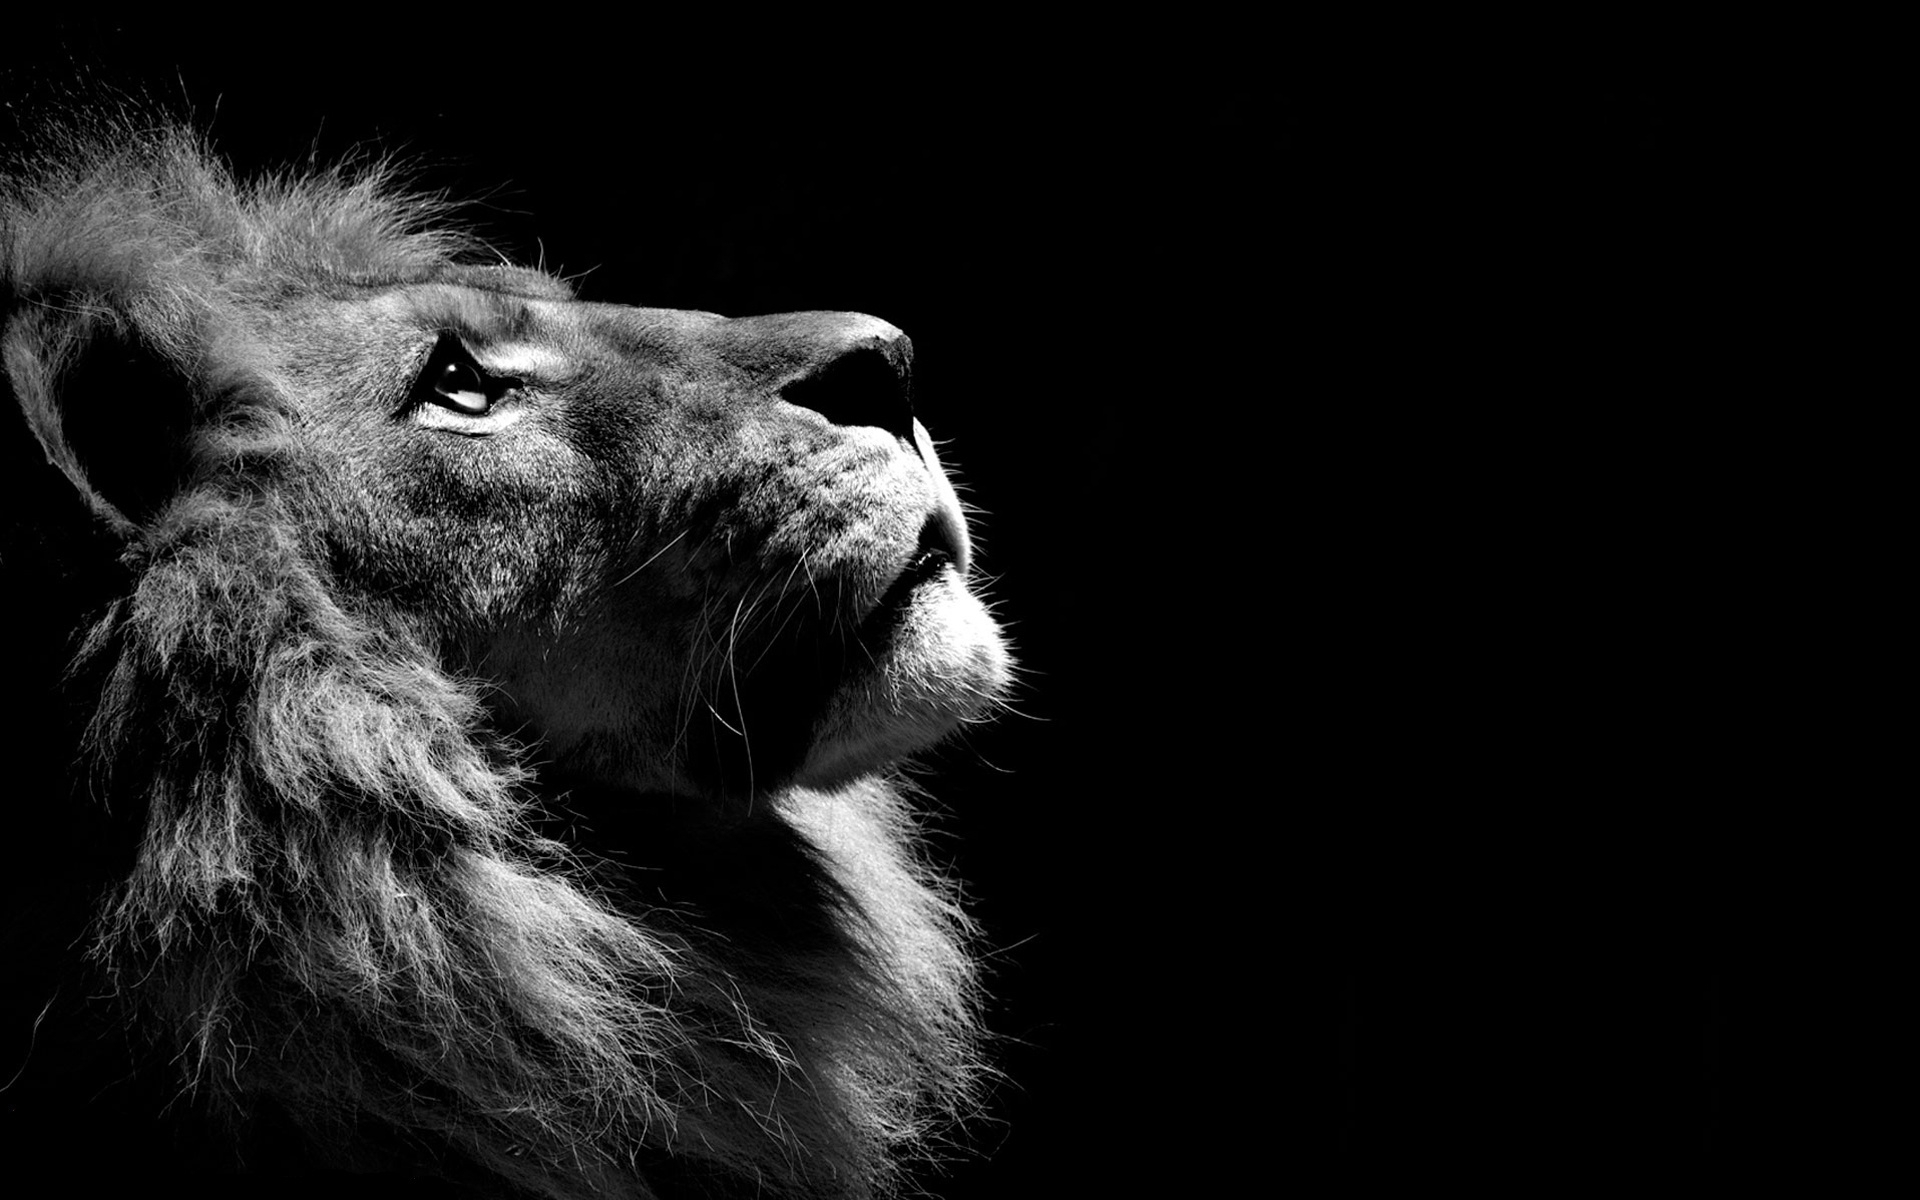 lion black and white, hd animals, 4k wallpapers, images, backgrounds